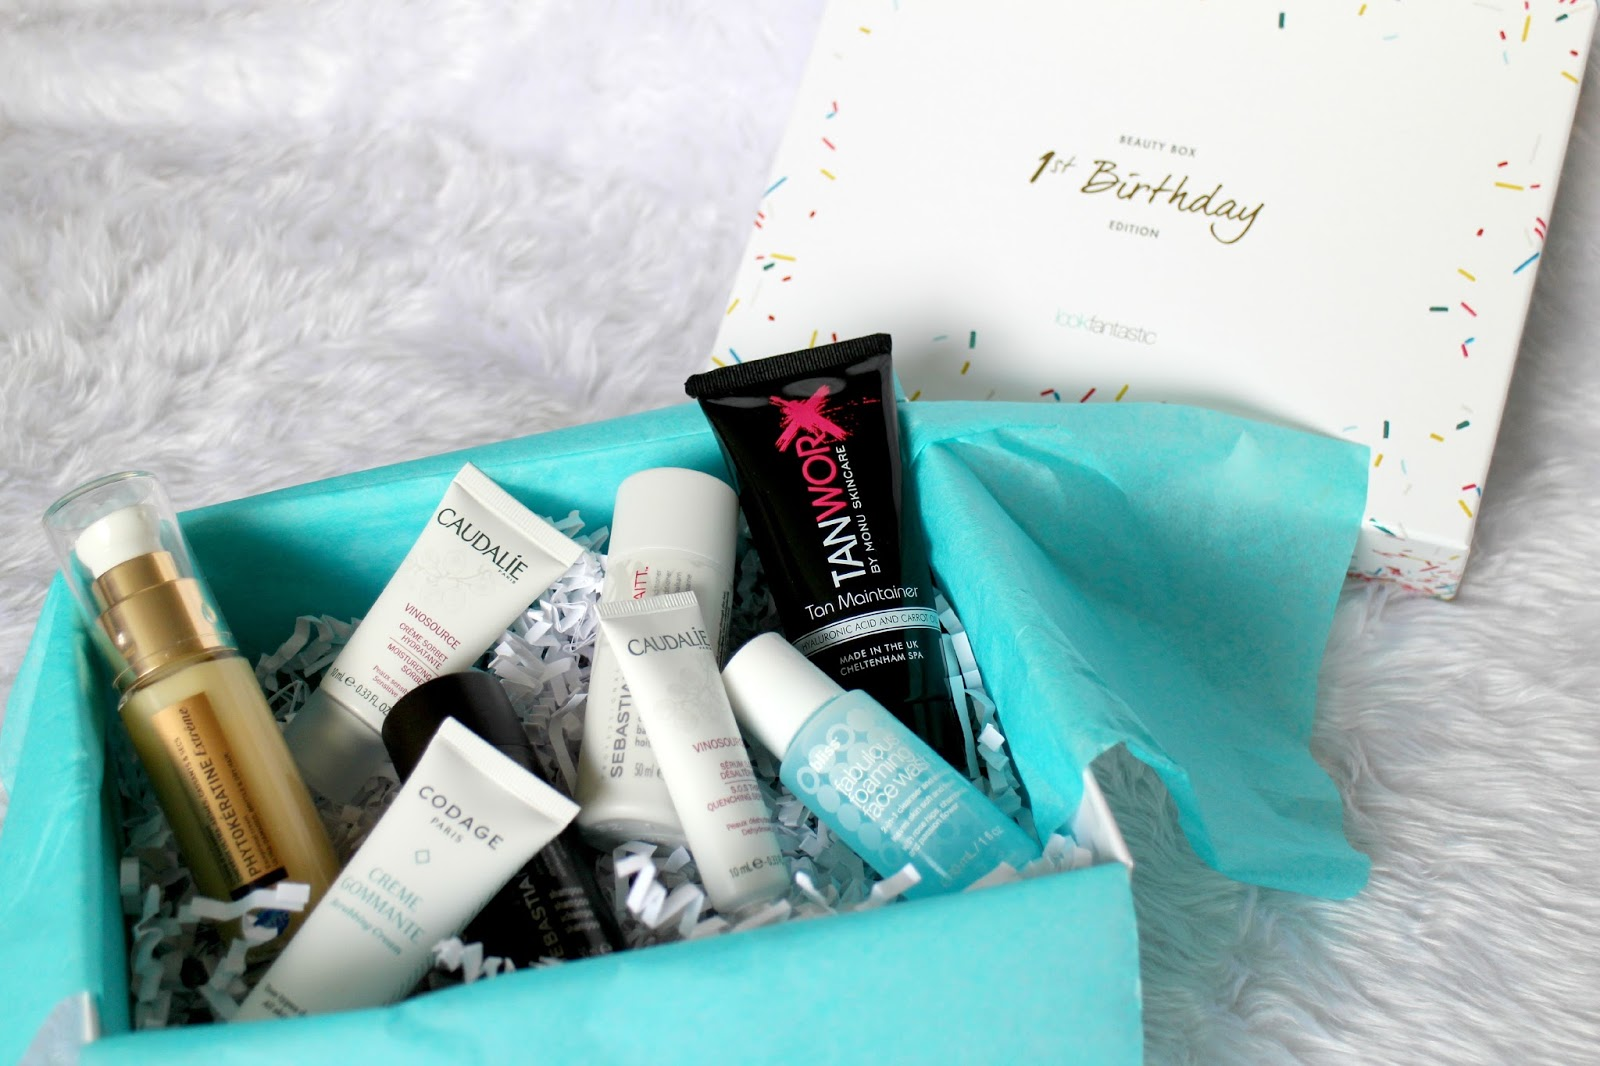 Look Fantastic Birthday Beauty Box